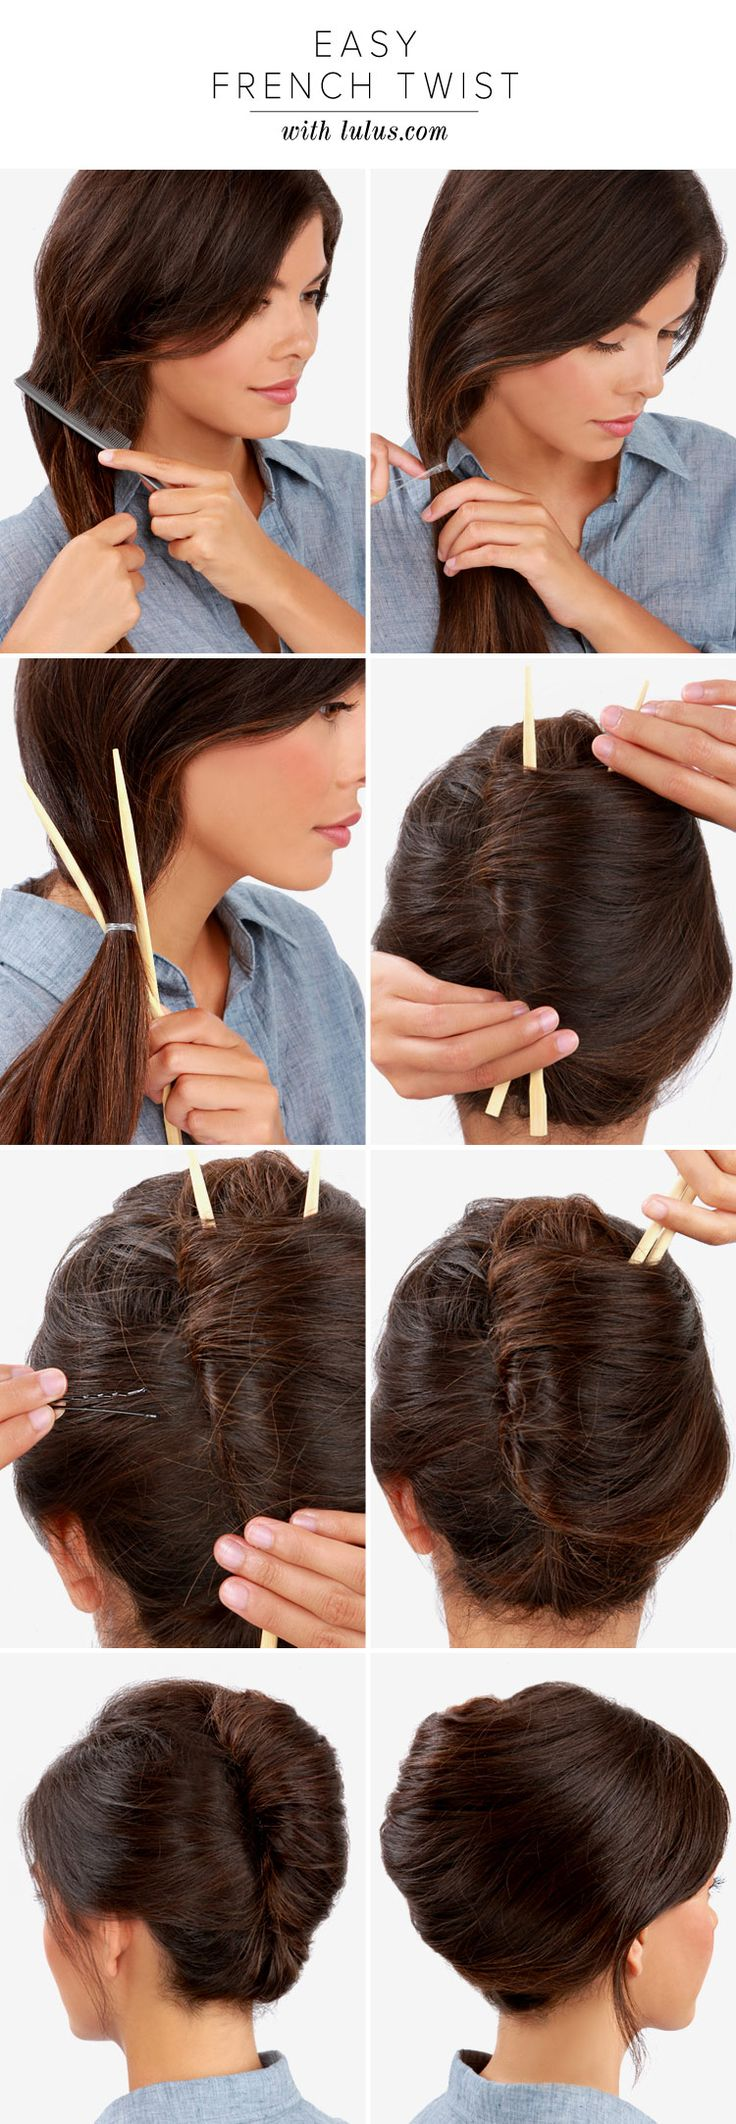 25 Best Ideas About French Twist Hair On Pinterest French Twist